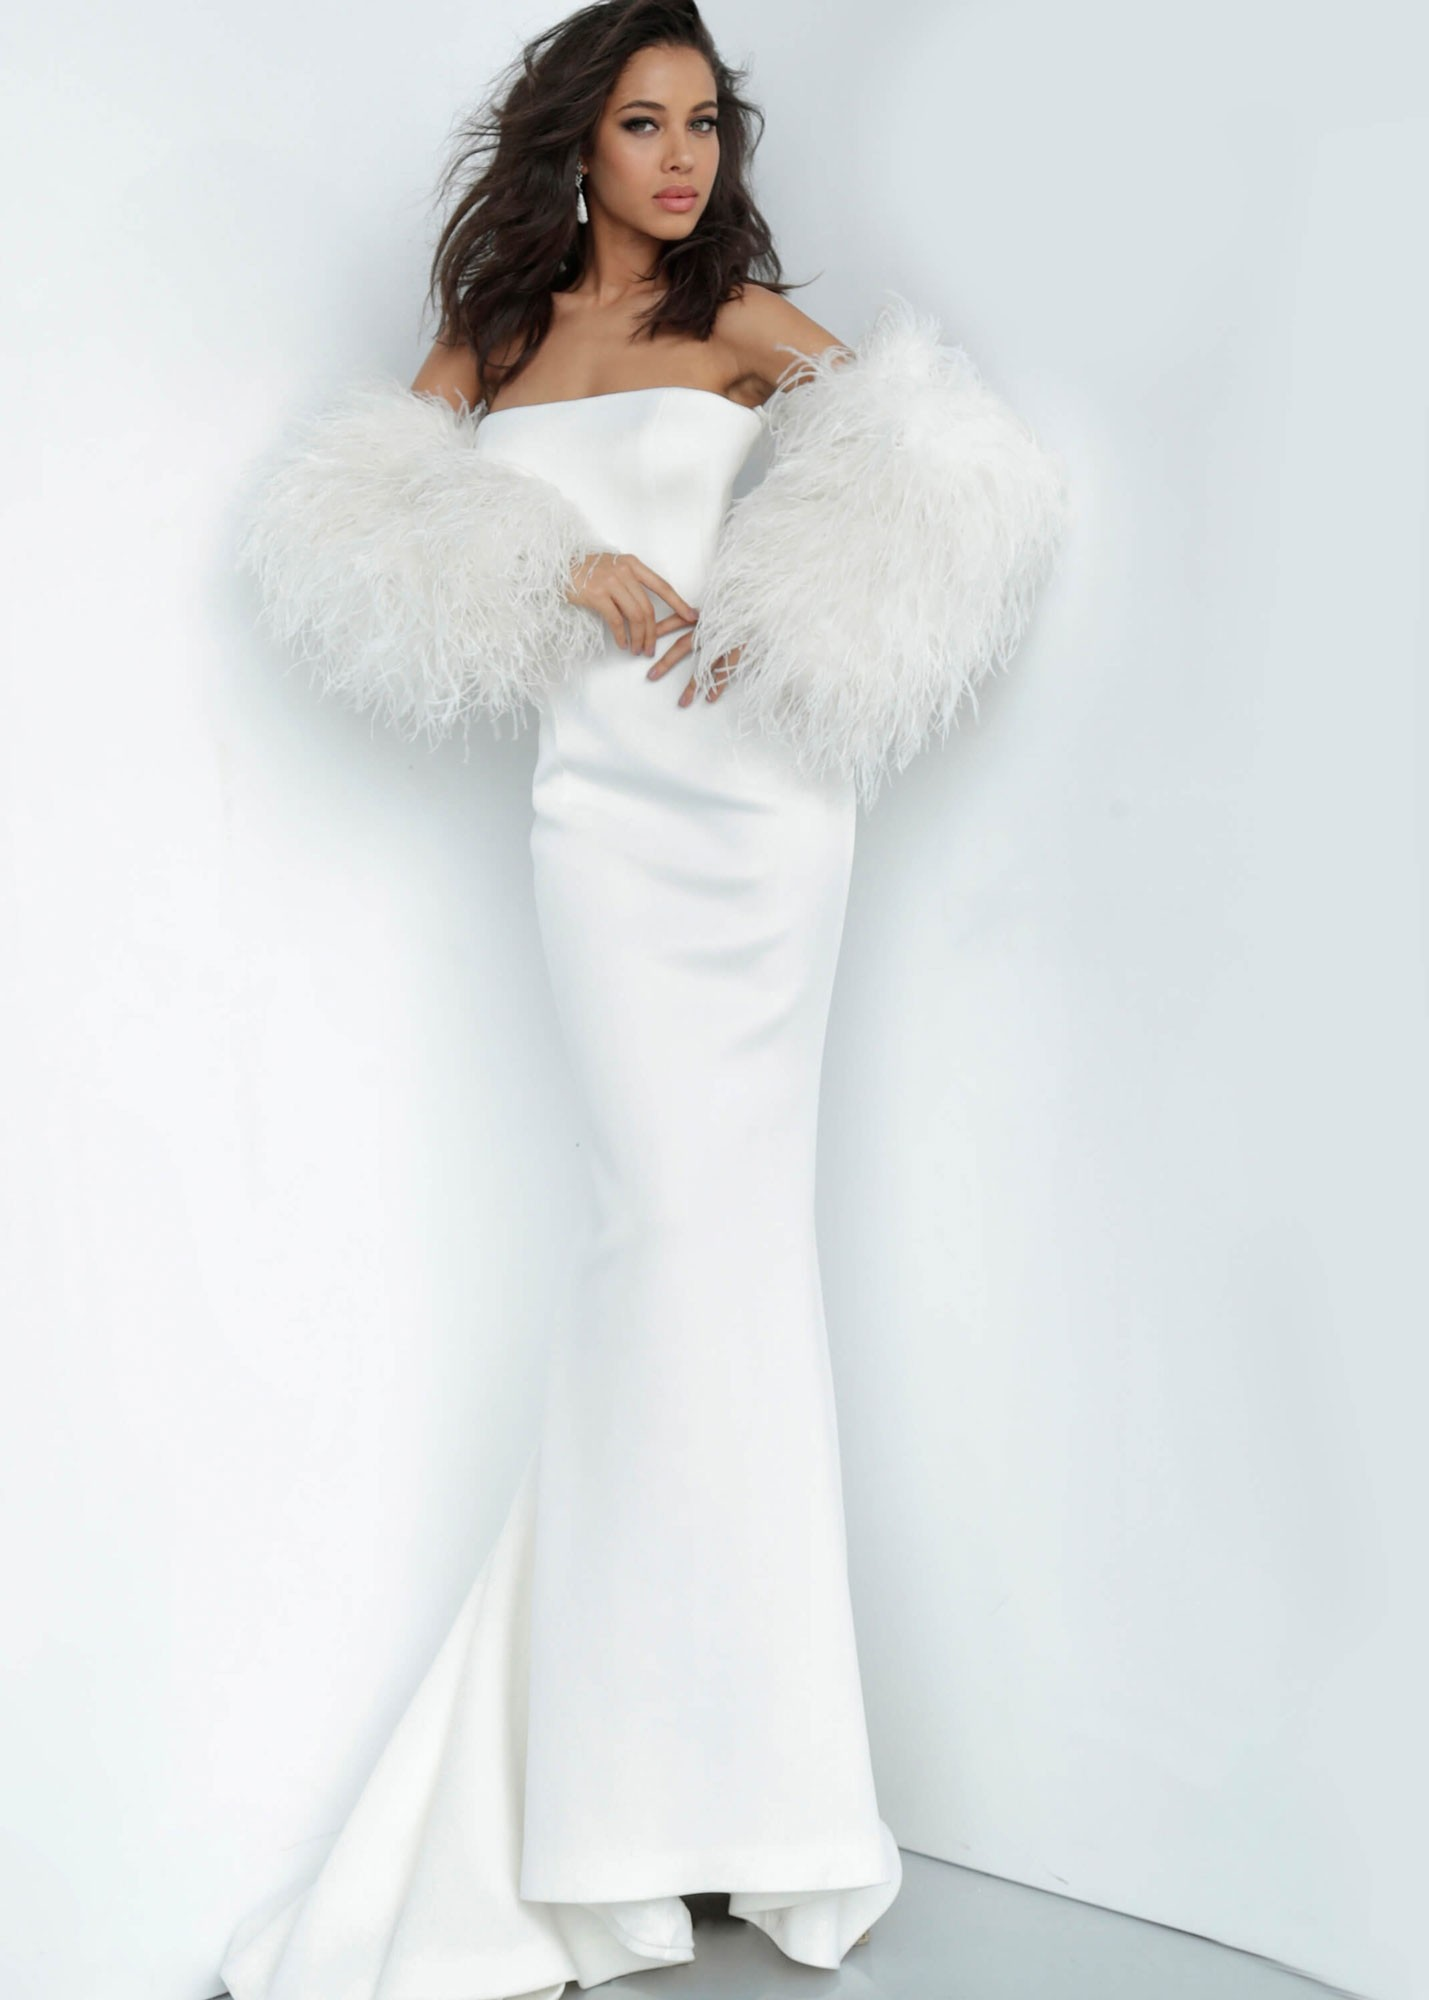 Jovani 1226 Strapless Gown with Fur Sleeves